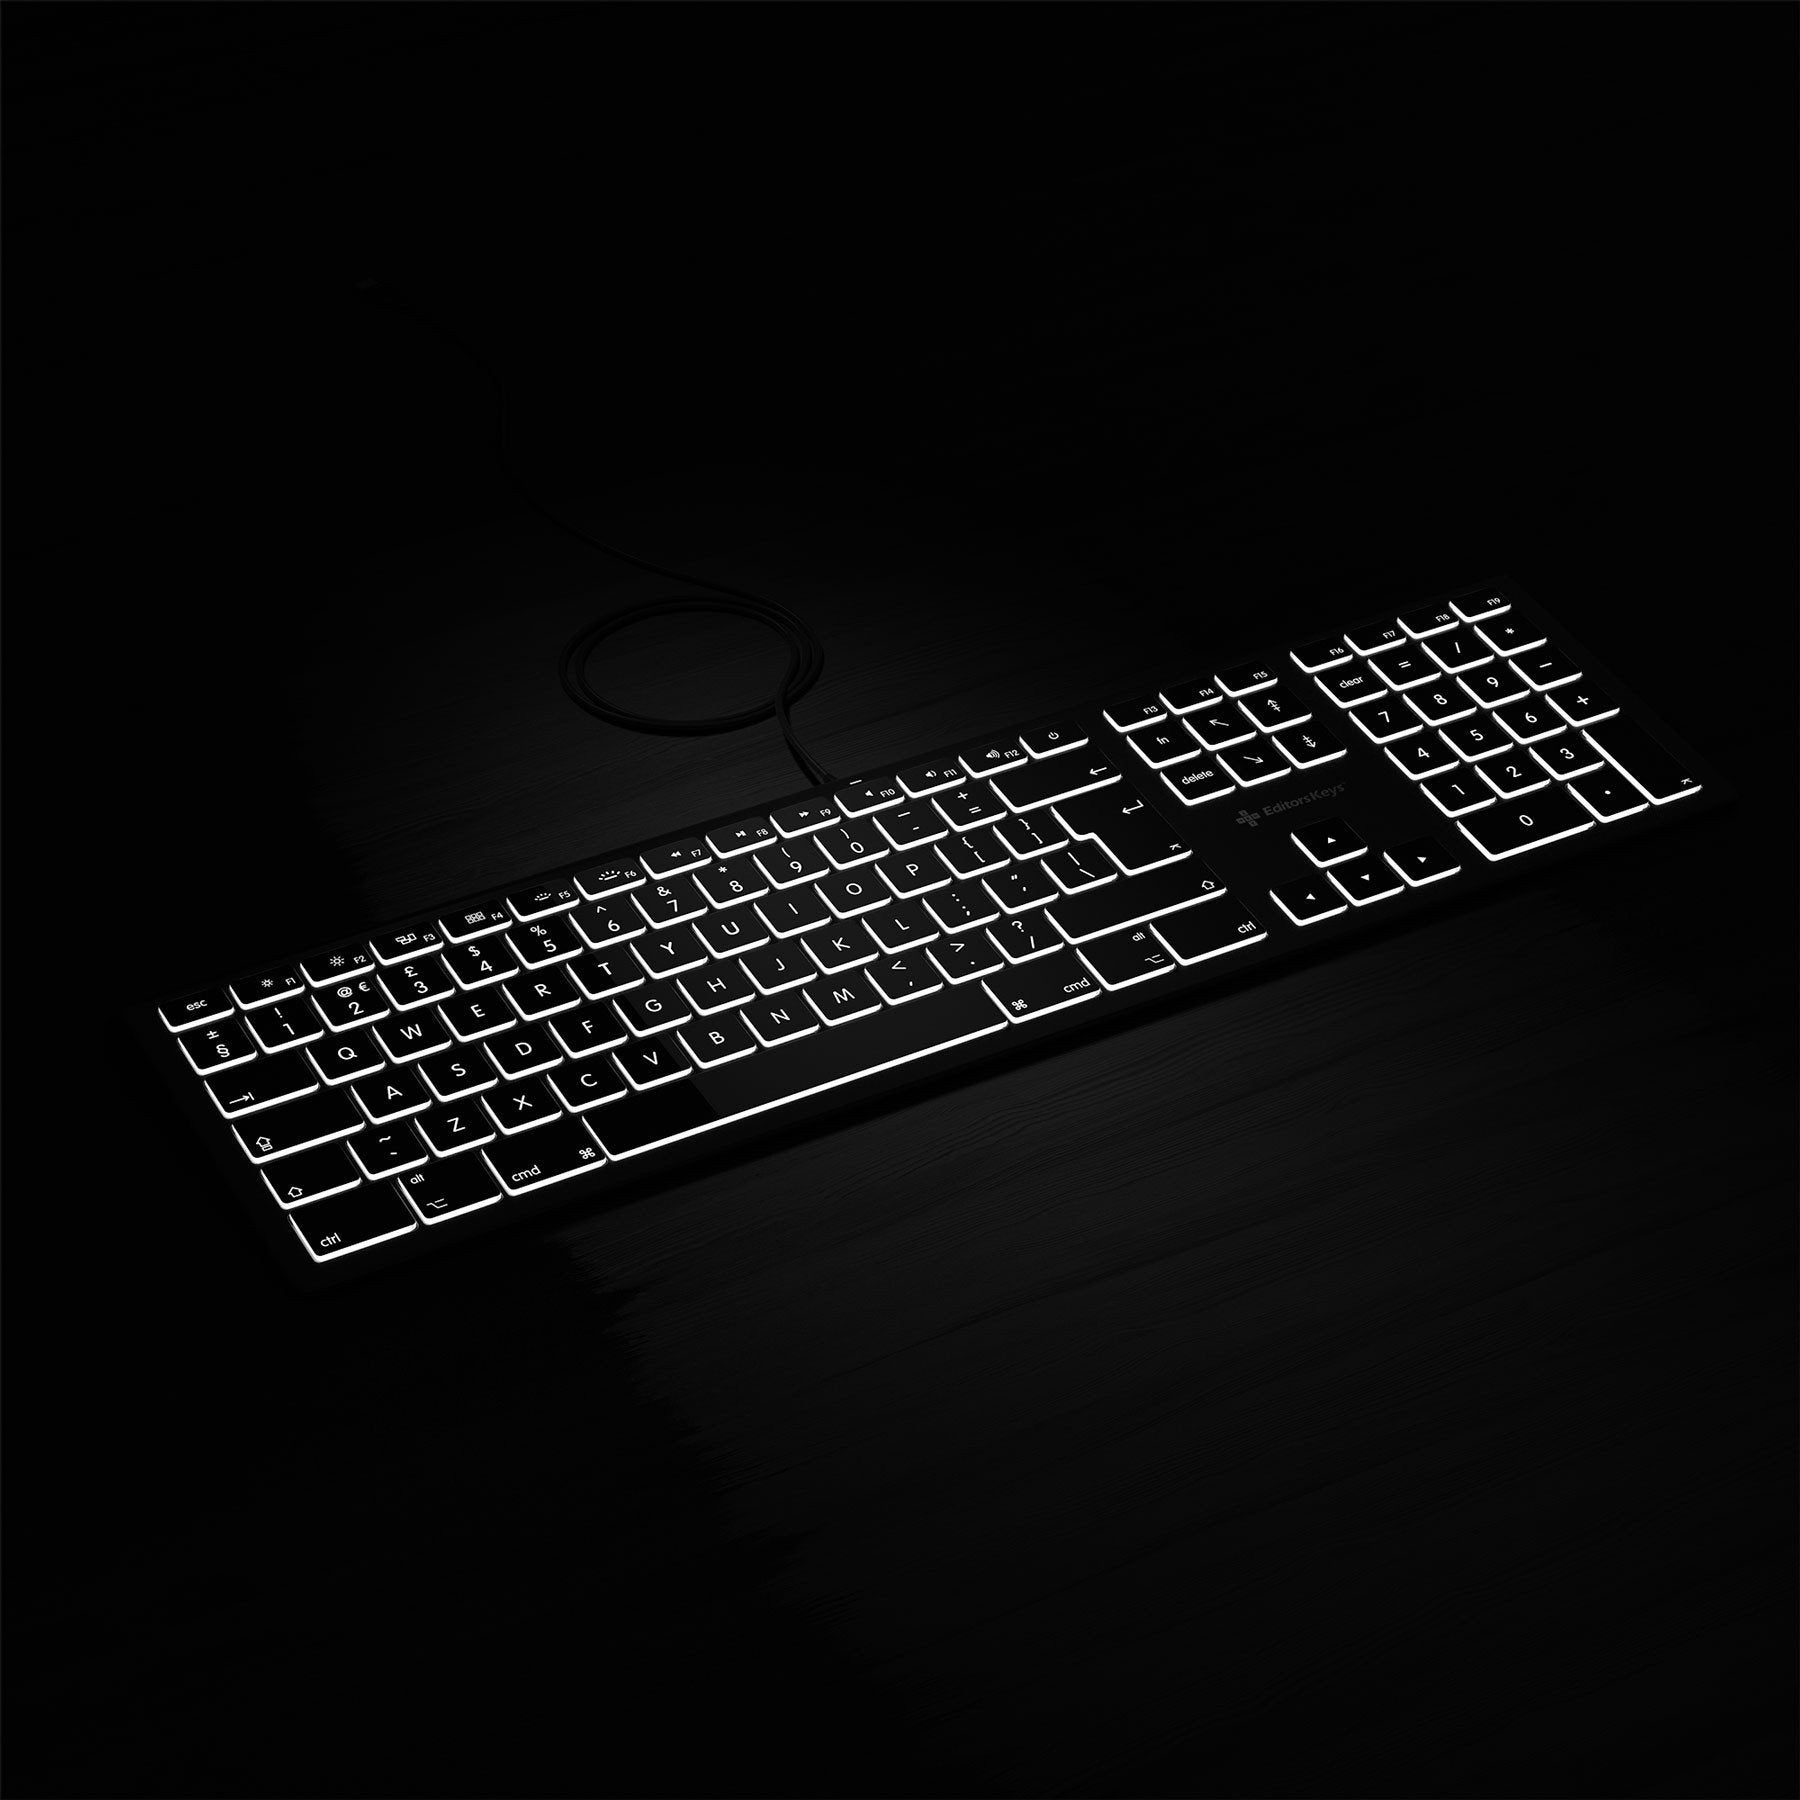 Backlit PC Keyboard - Standard Keyboard